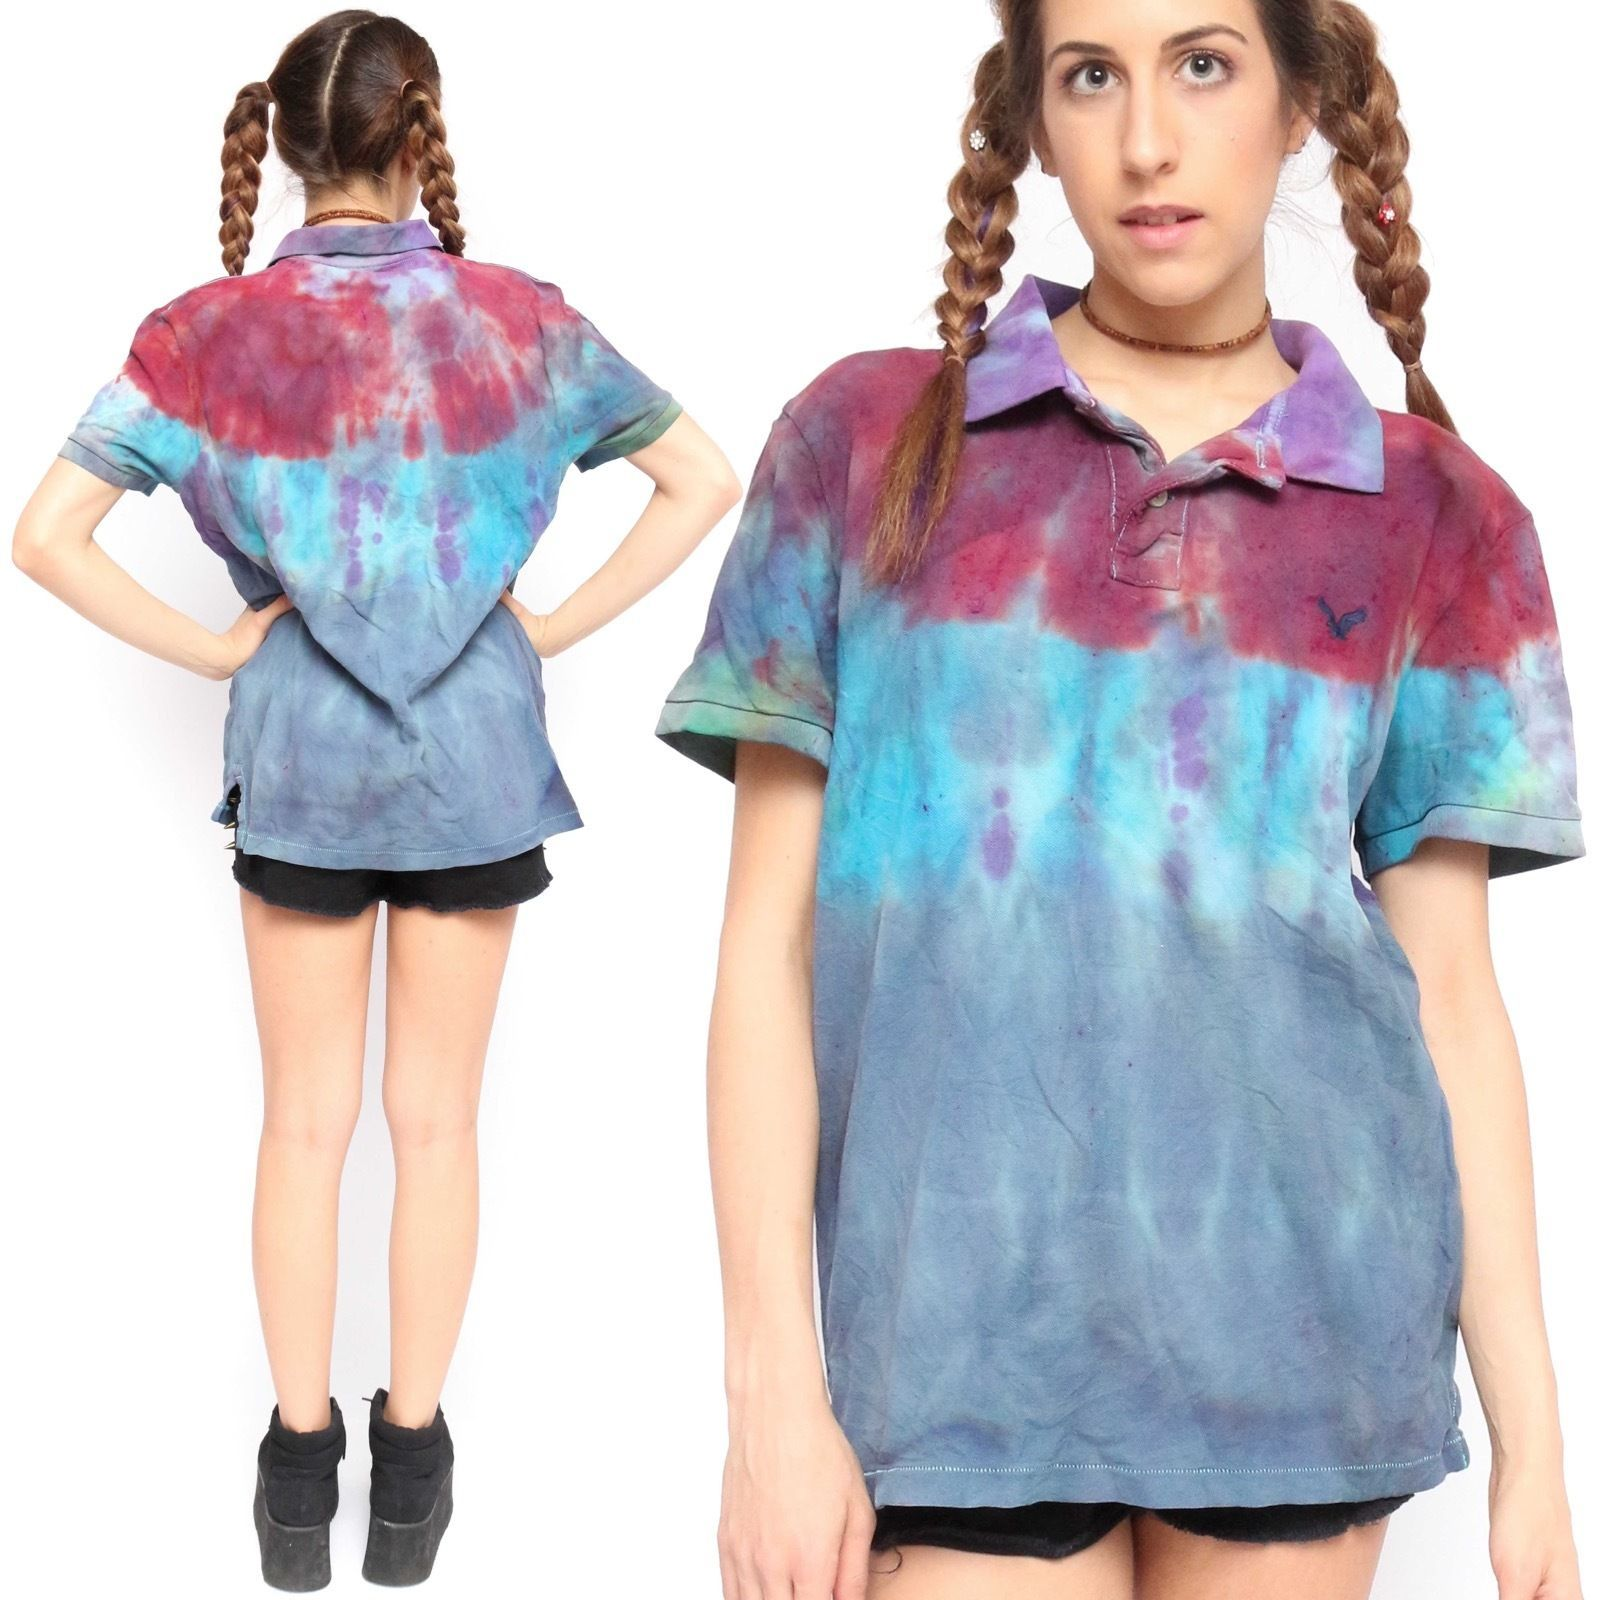 0d9080cf6c4 Vintage 90 s American Eagle Purple Blue Red Tie Dye Polo Shirt ...